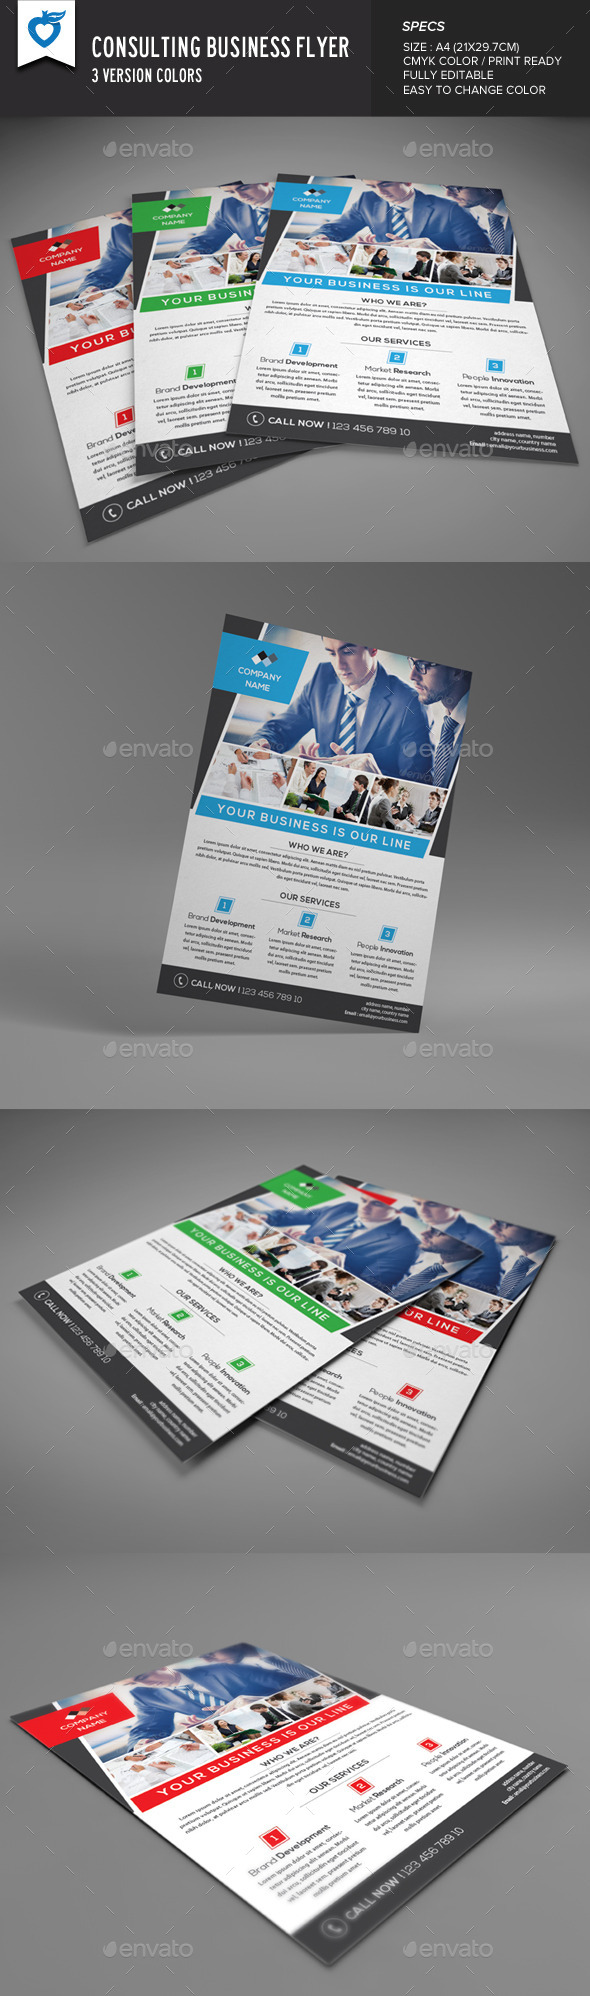 Consulting Business Flyer - Corporate Flyers